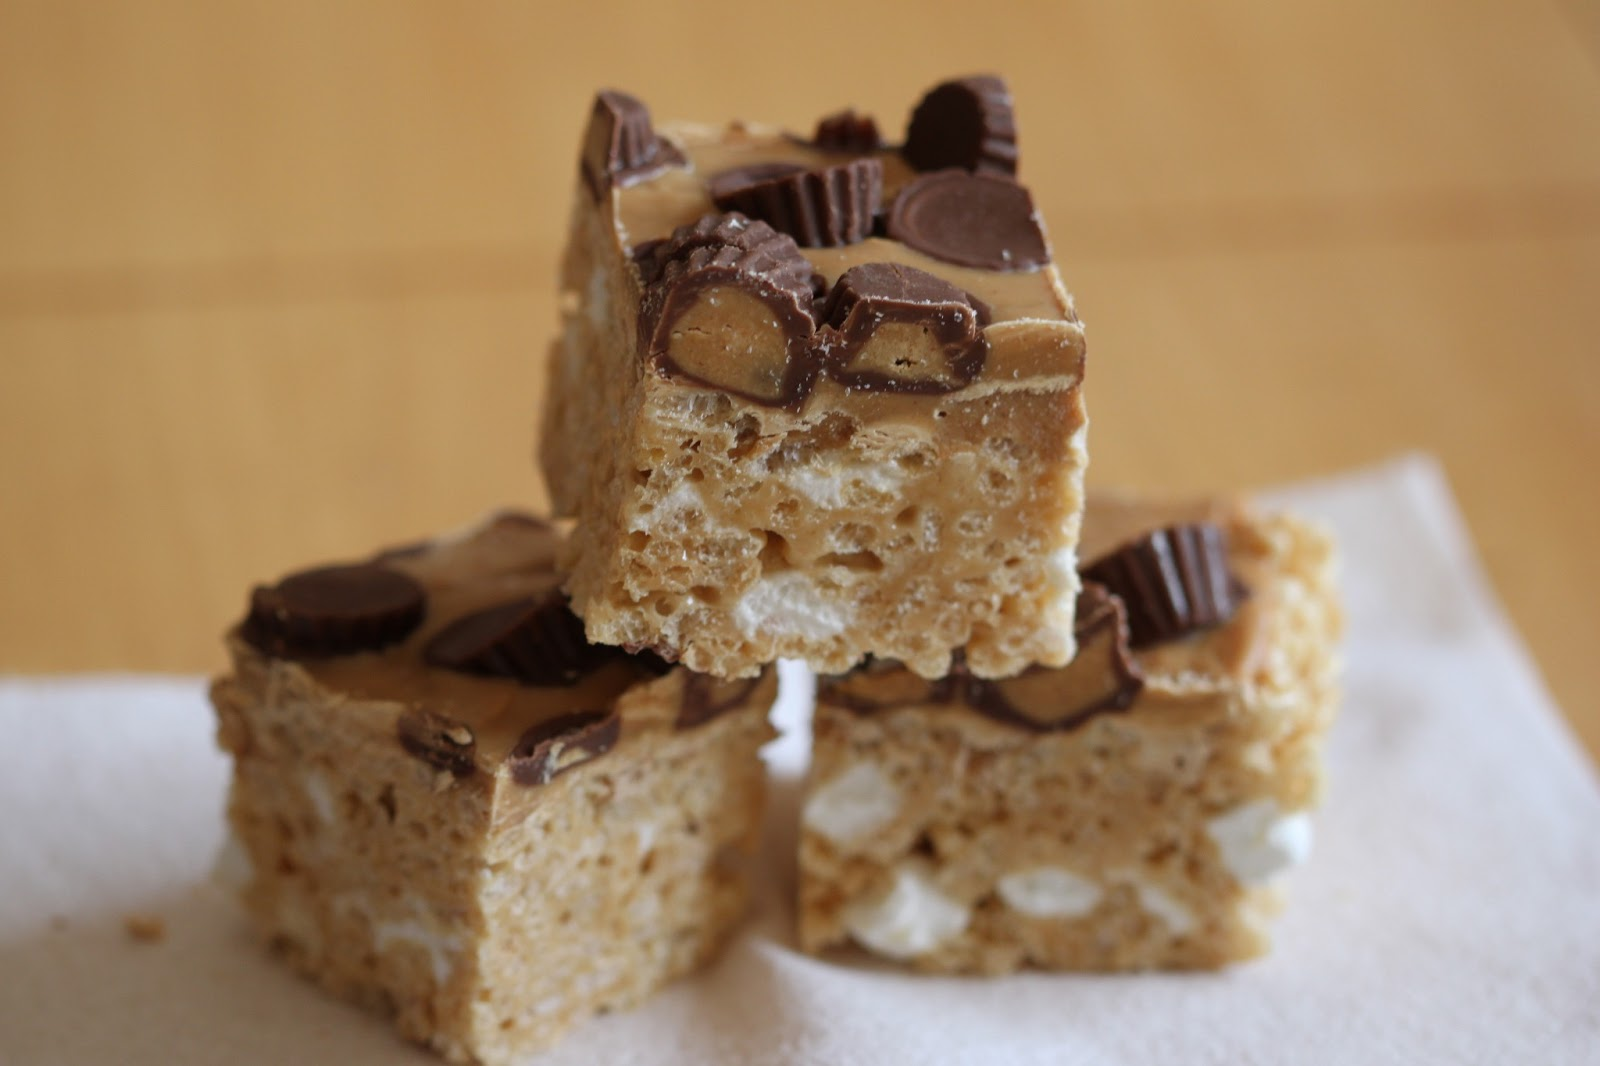 Peanut butter lovers, here's another one just for you!